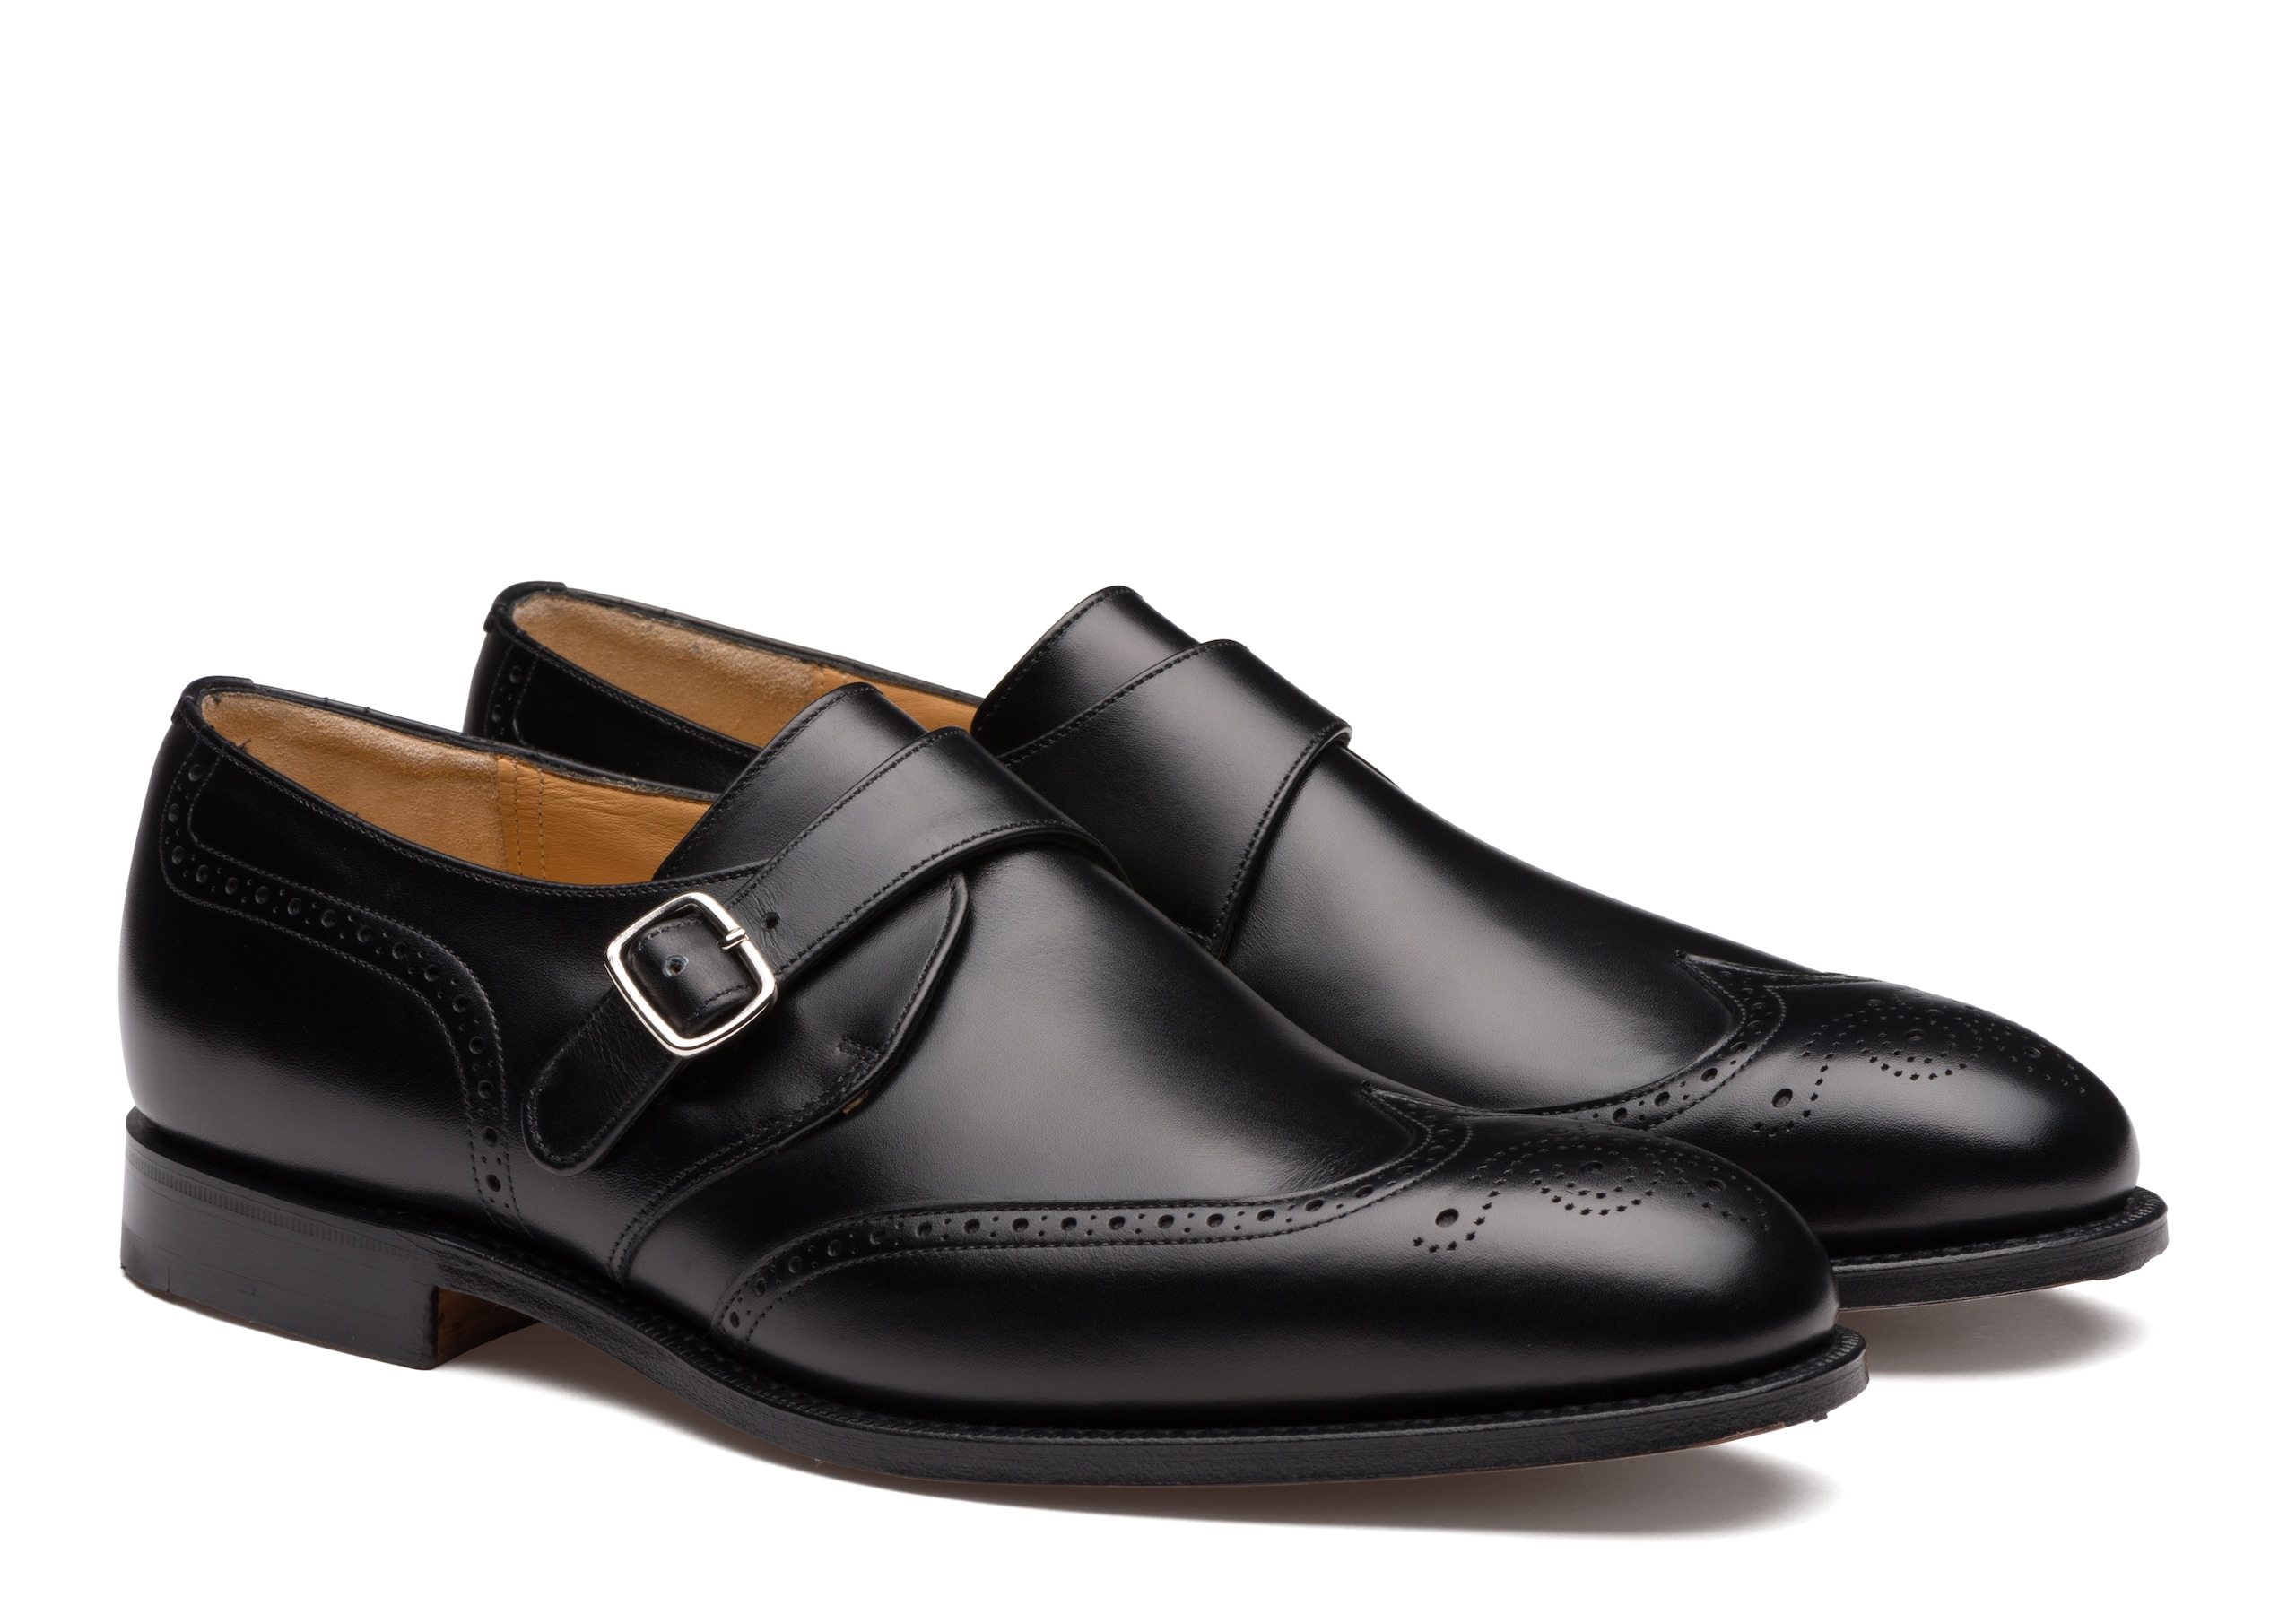 Piccadilly 173 Church's Calf Leather Monk Strap Brogue Black